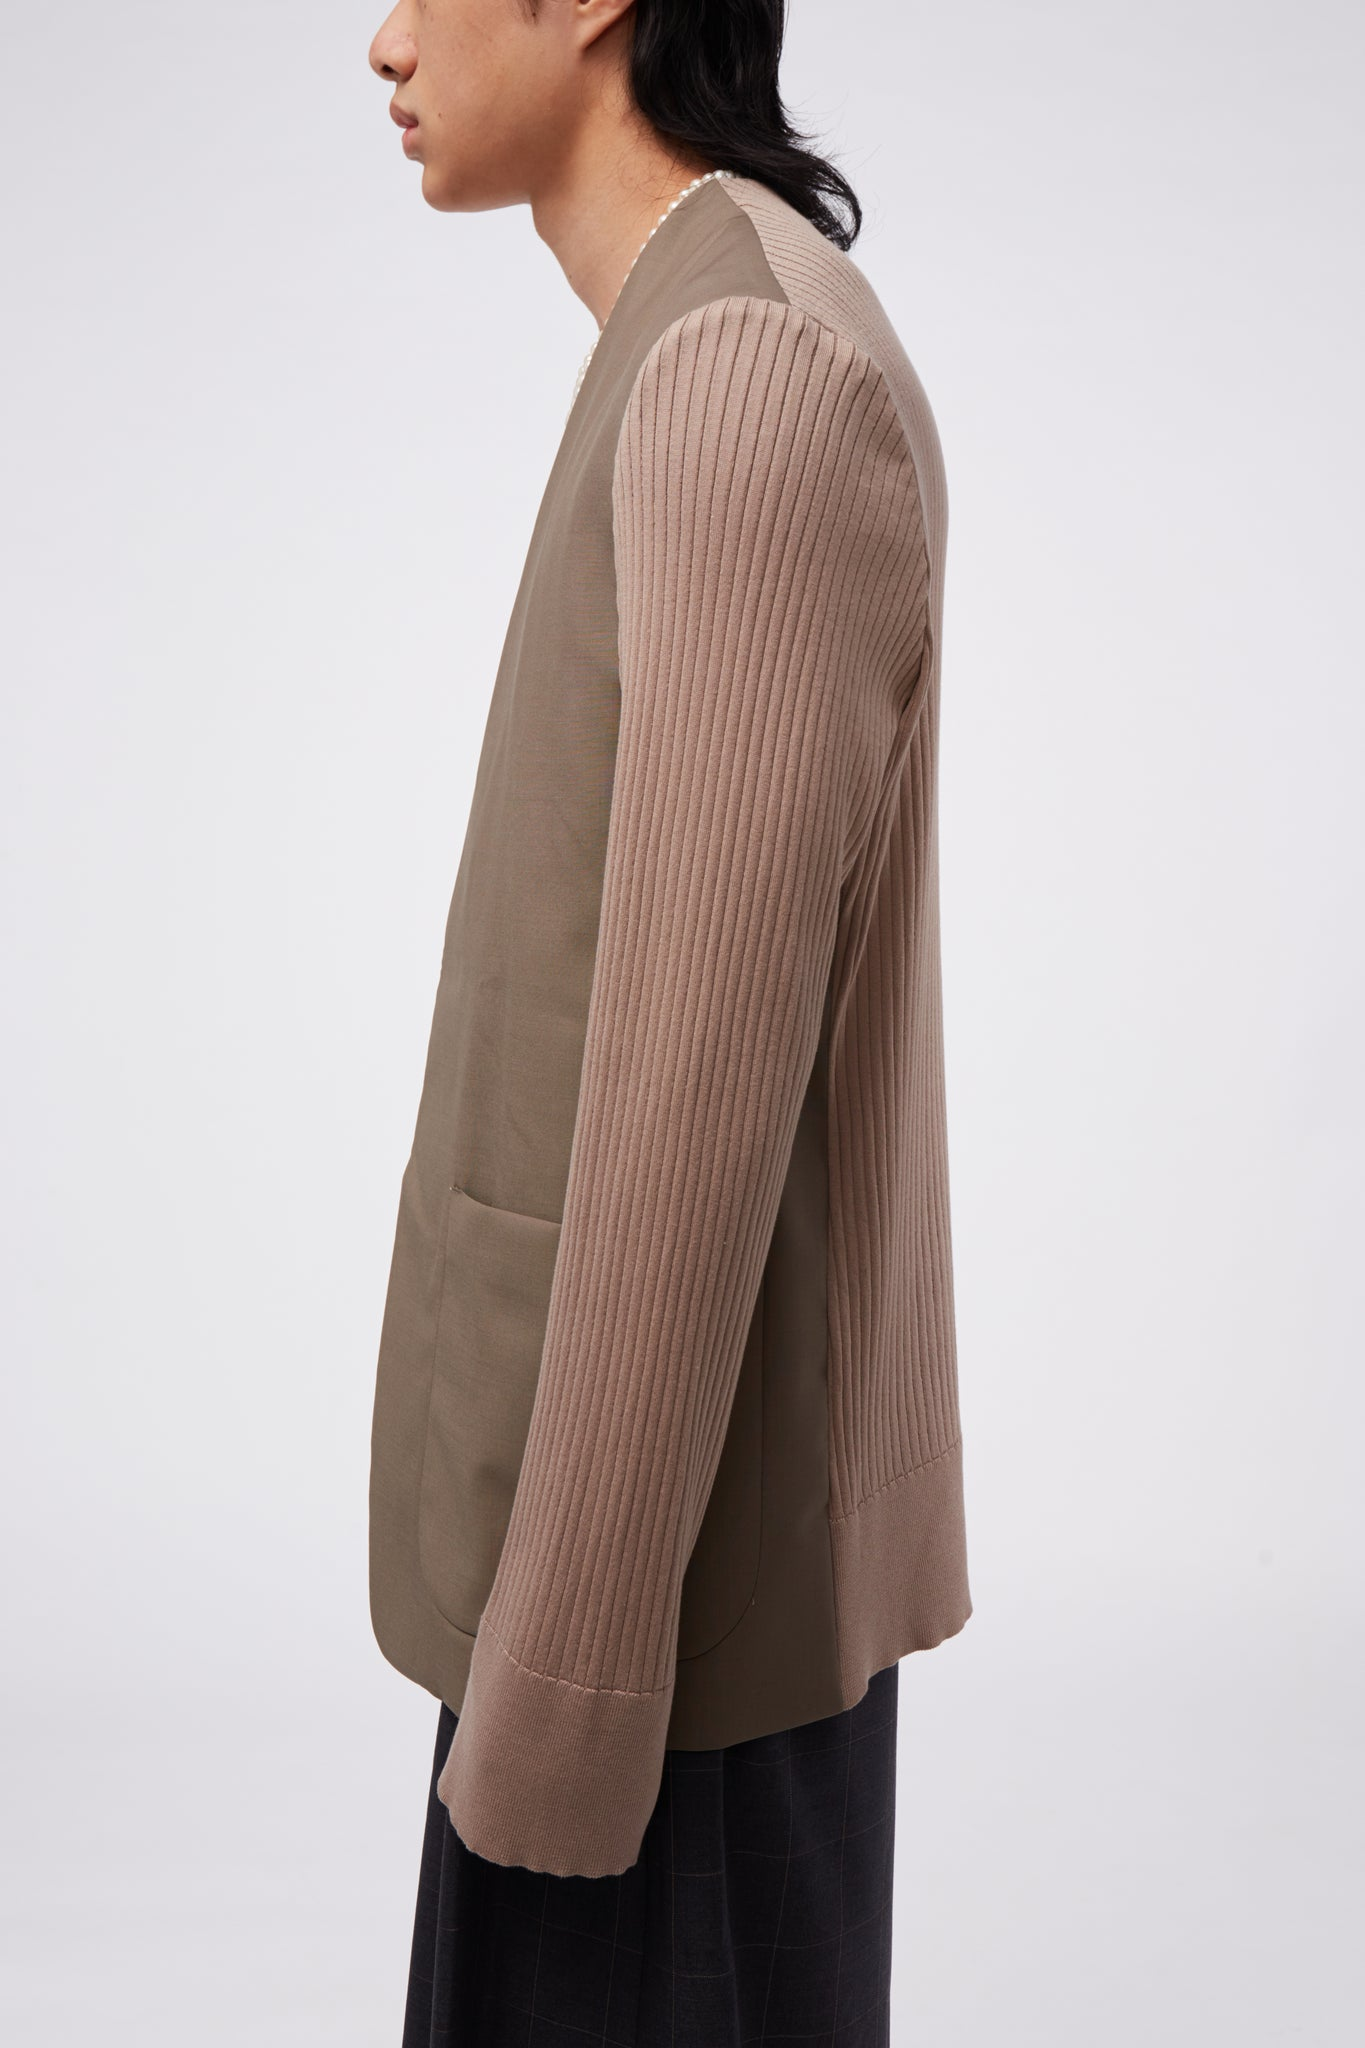 Knit Sleeve Cardigan Jacket Beige